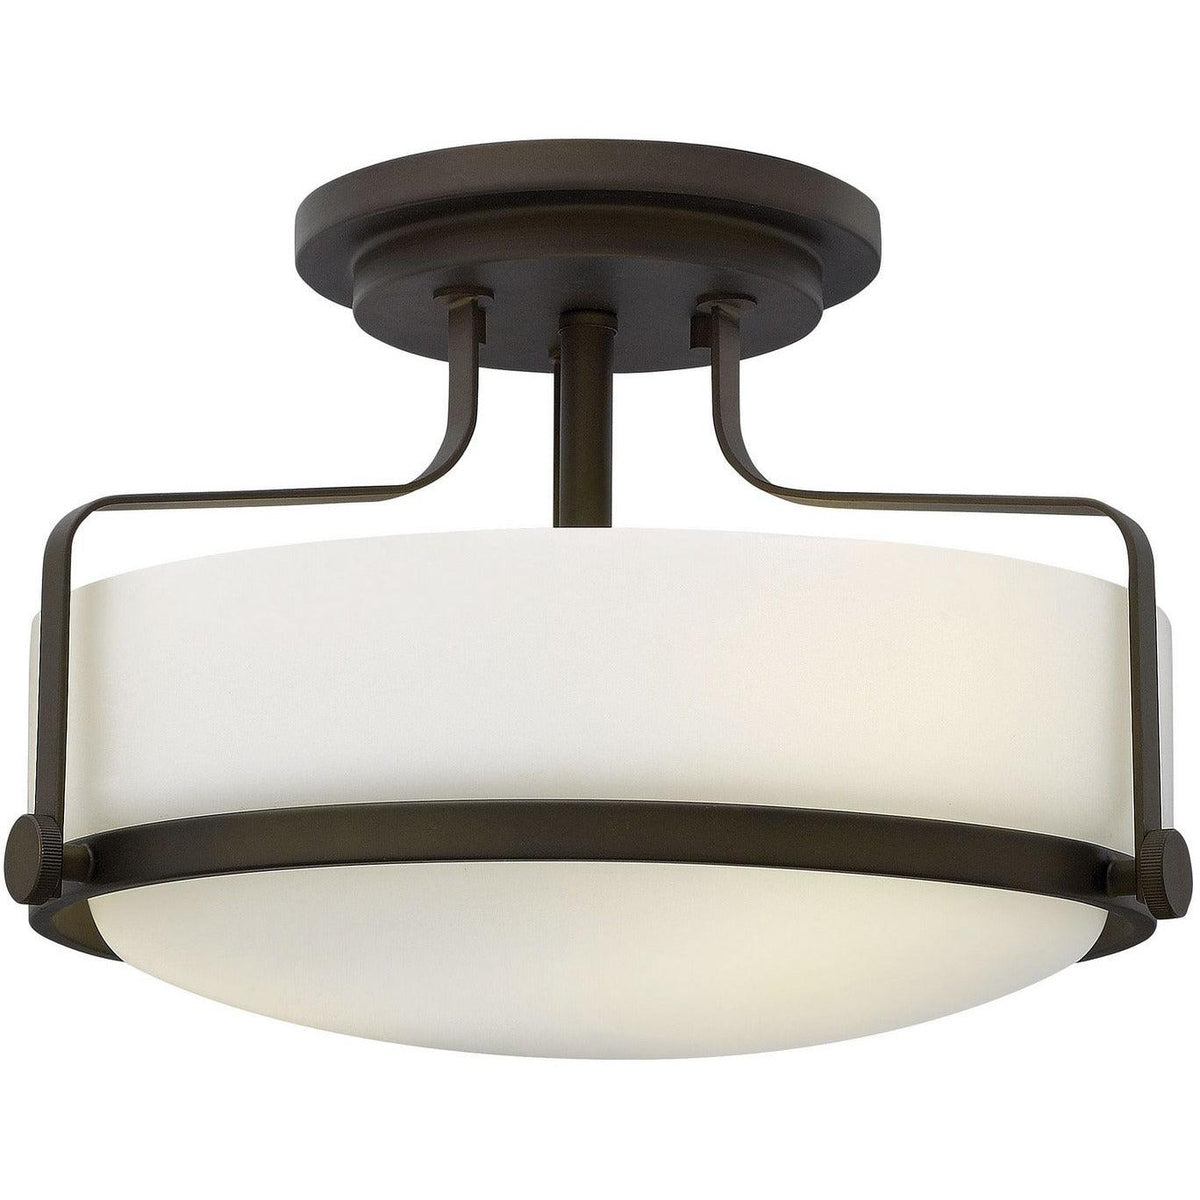 Hinkley Canada - 3641OZ - Three Light Semi-Flush Mount - Harper - Oil Rubbed Bronze